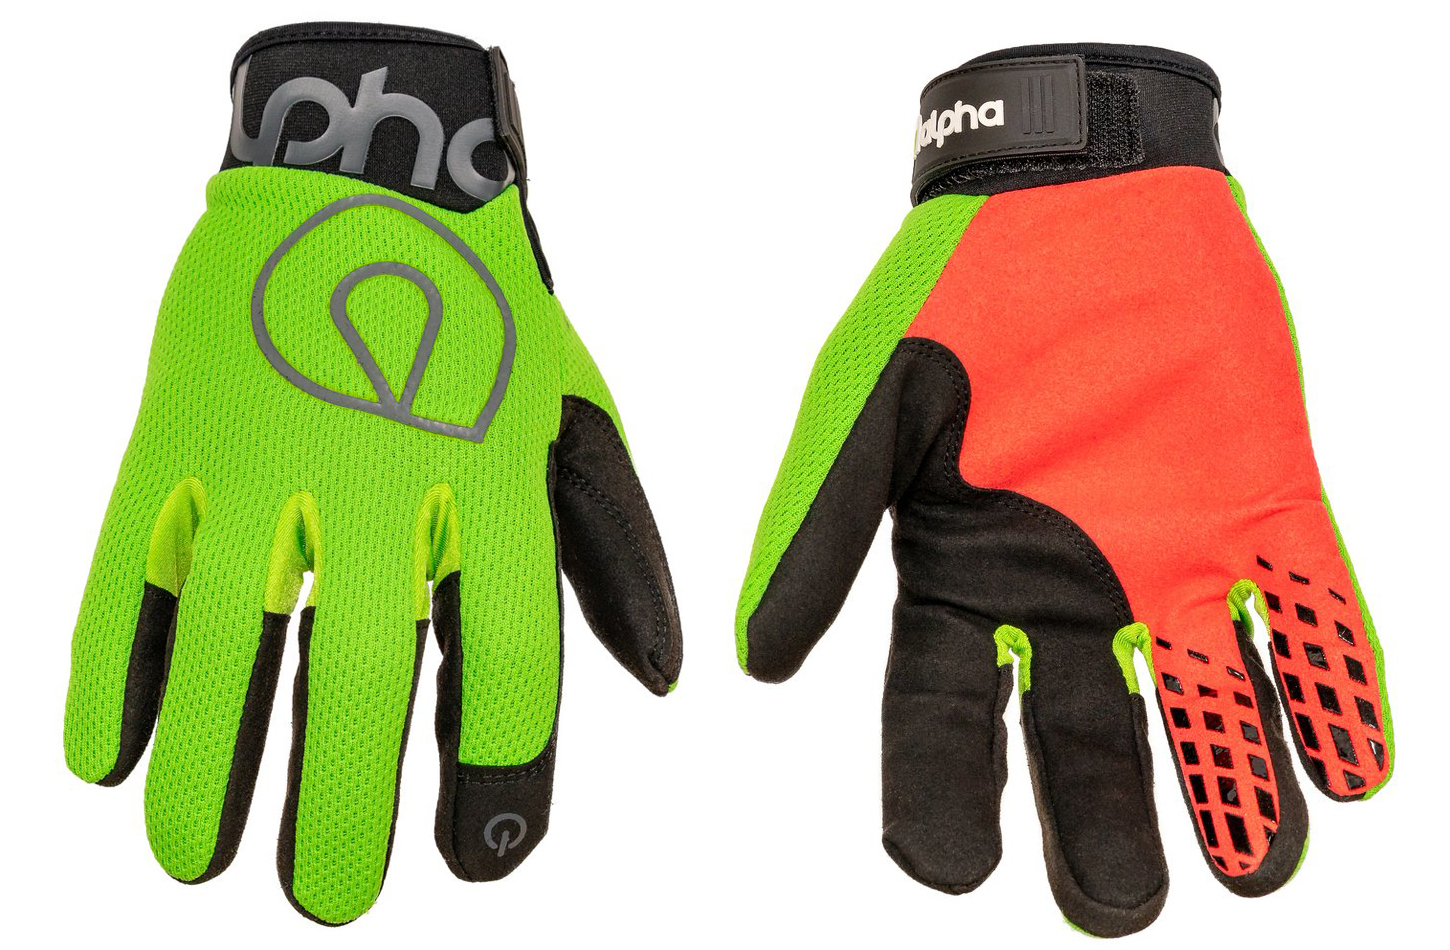 Alpha Gloves AG02-04-S Gloves, Shop, The Standard, Hook and Loop Closure, Neoprene Cuff, Mesh Top, Touch Screen Capable, Synthetic Leather Palm, Fluorescent Green, Small, Pair